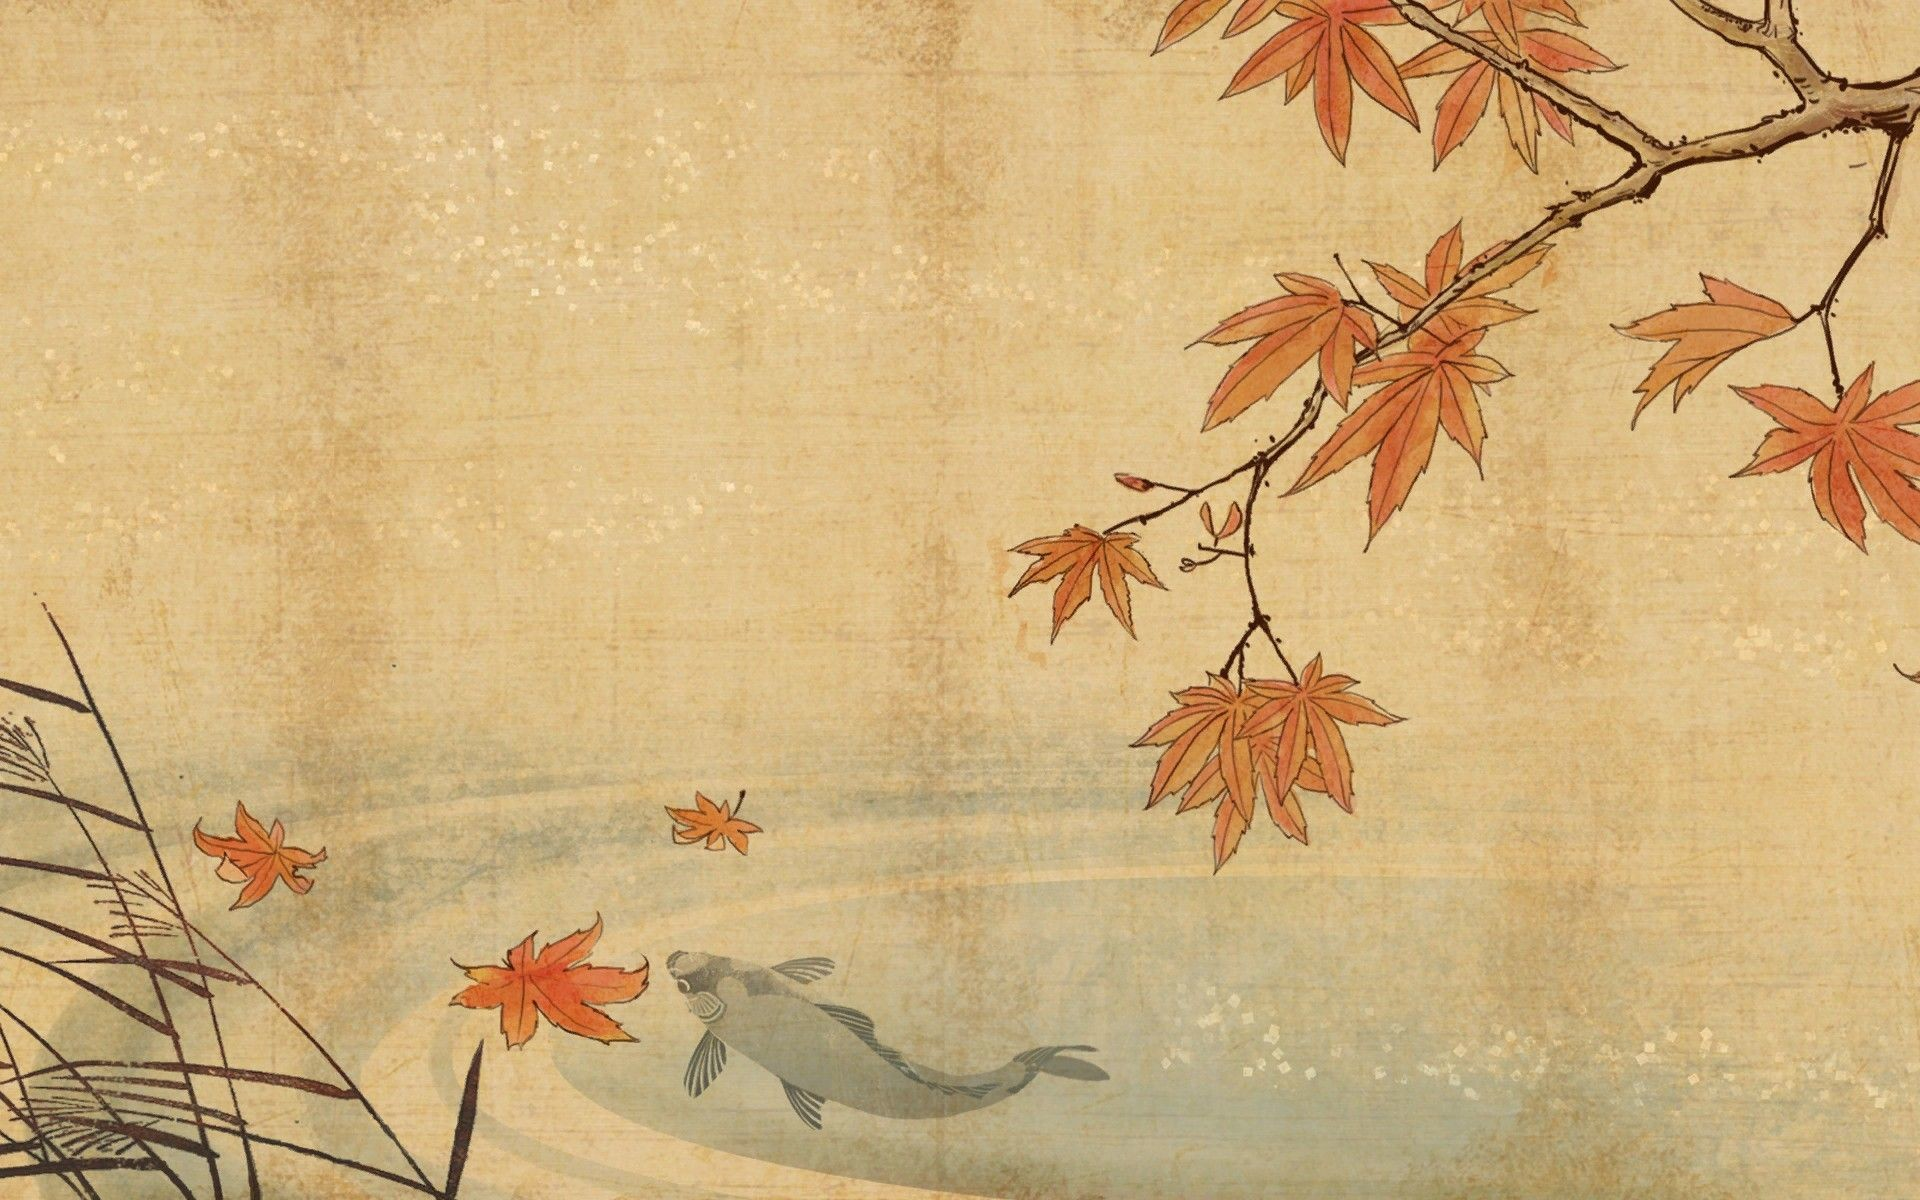 1920x1200 Traditional Japanese Art Wallpaper High Quality Resolution .